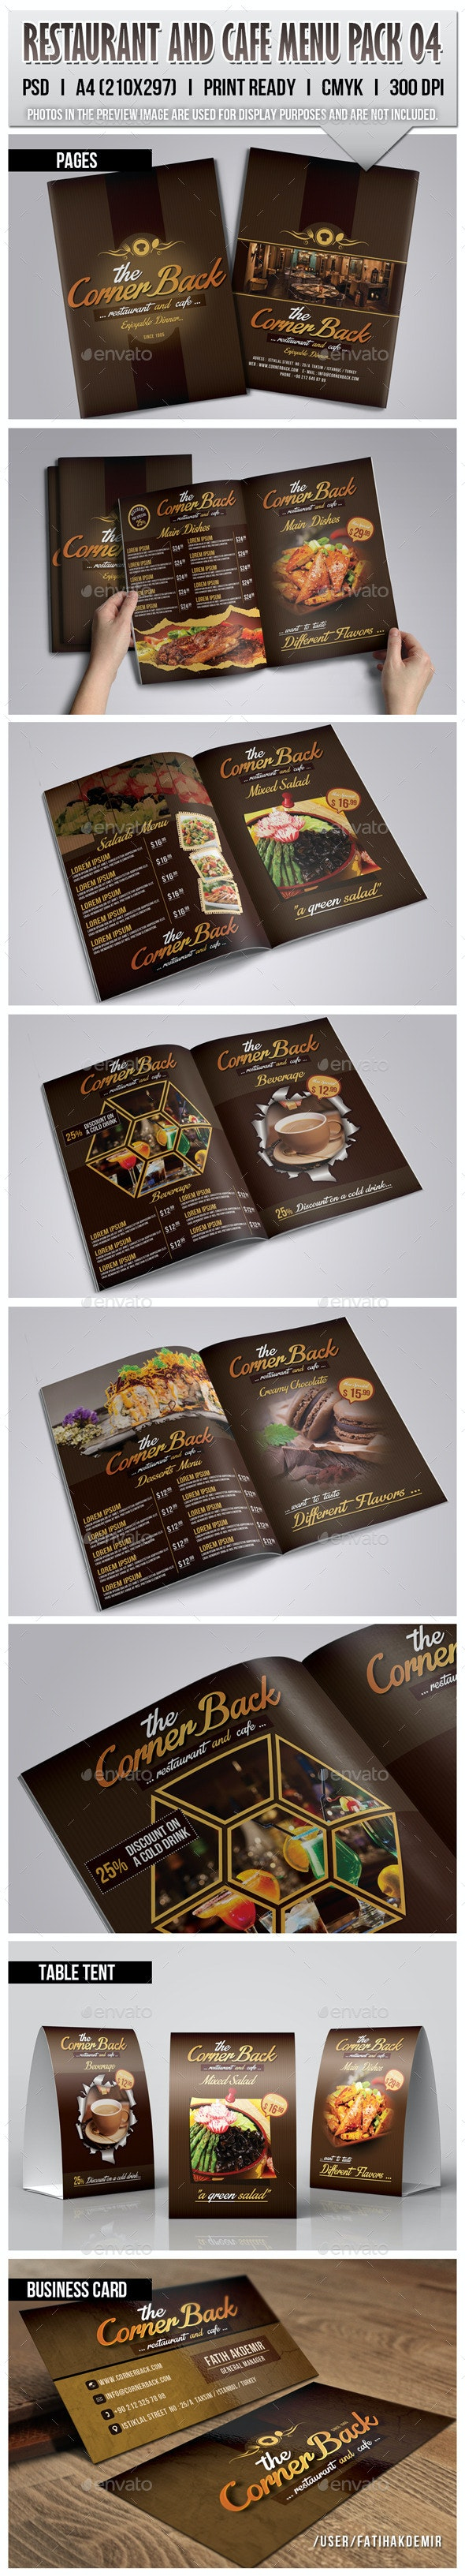 Restaurant & Cafe Menu Pack 04 - Food Menus Print Templates